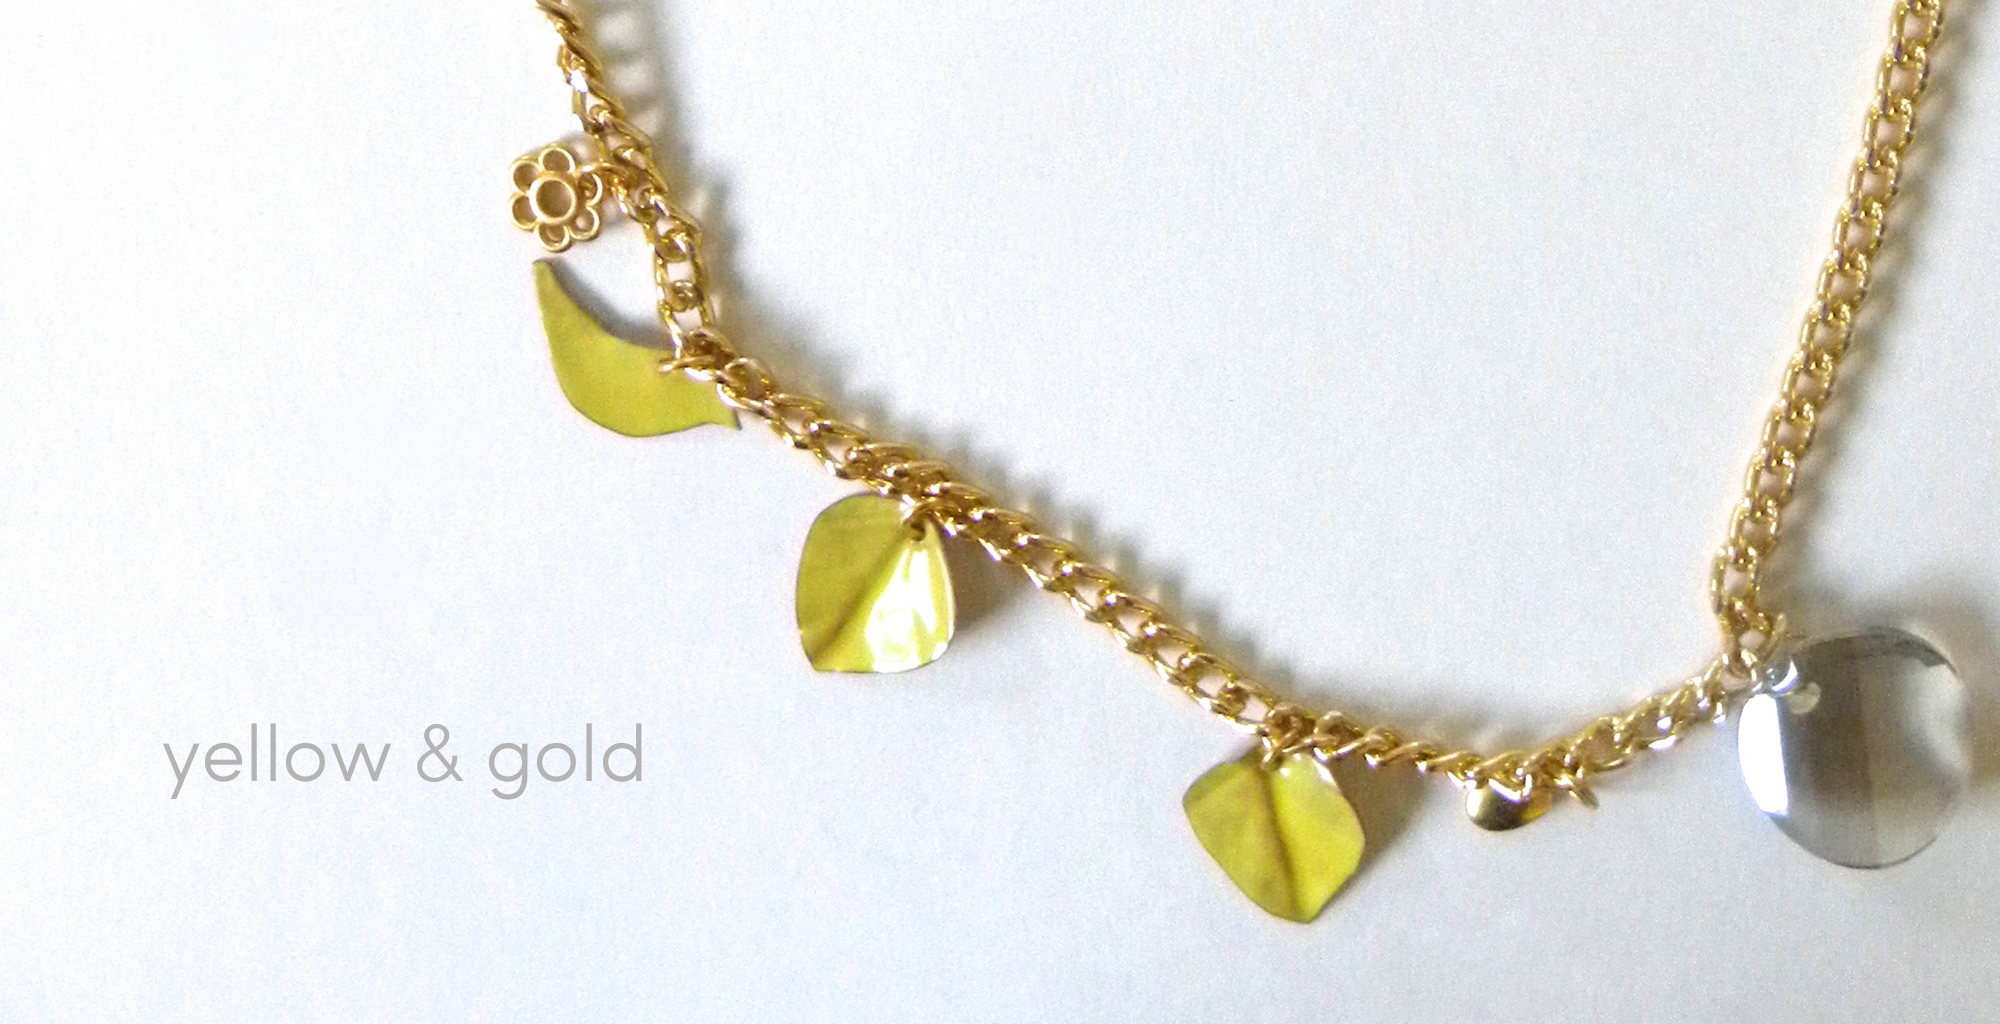 yellow_gold_feature